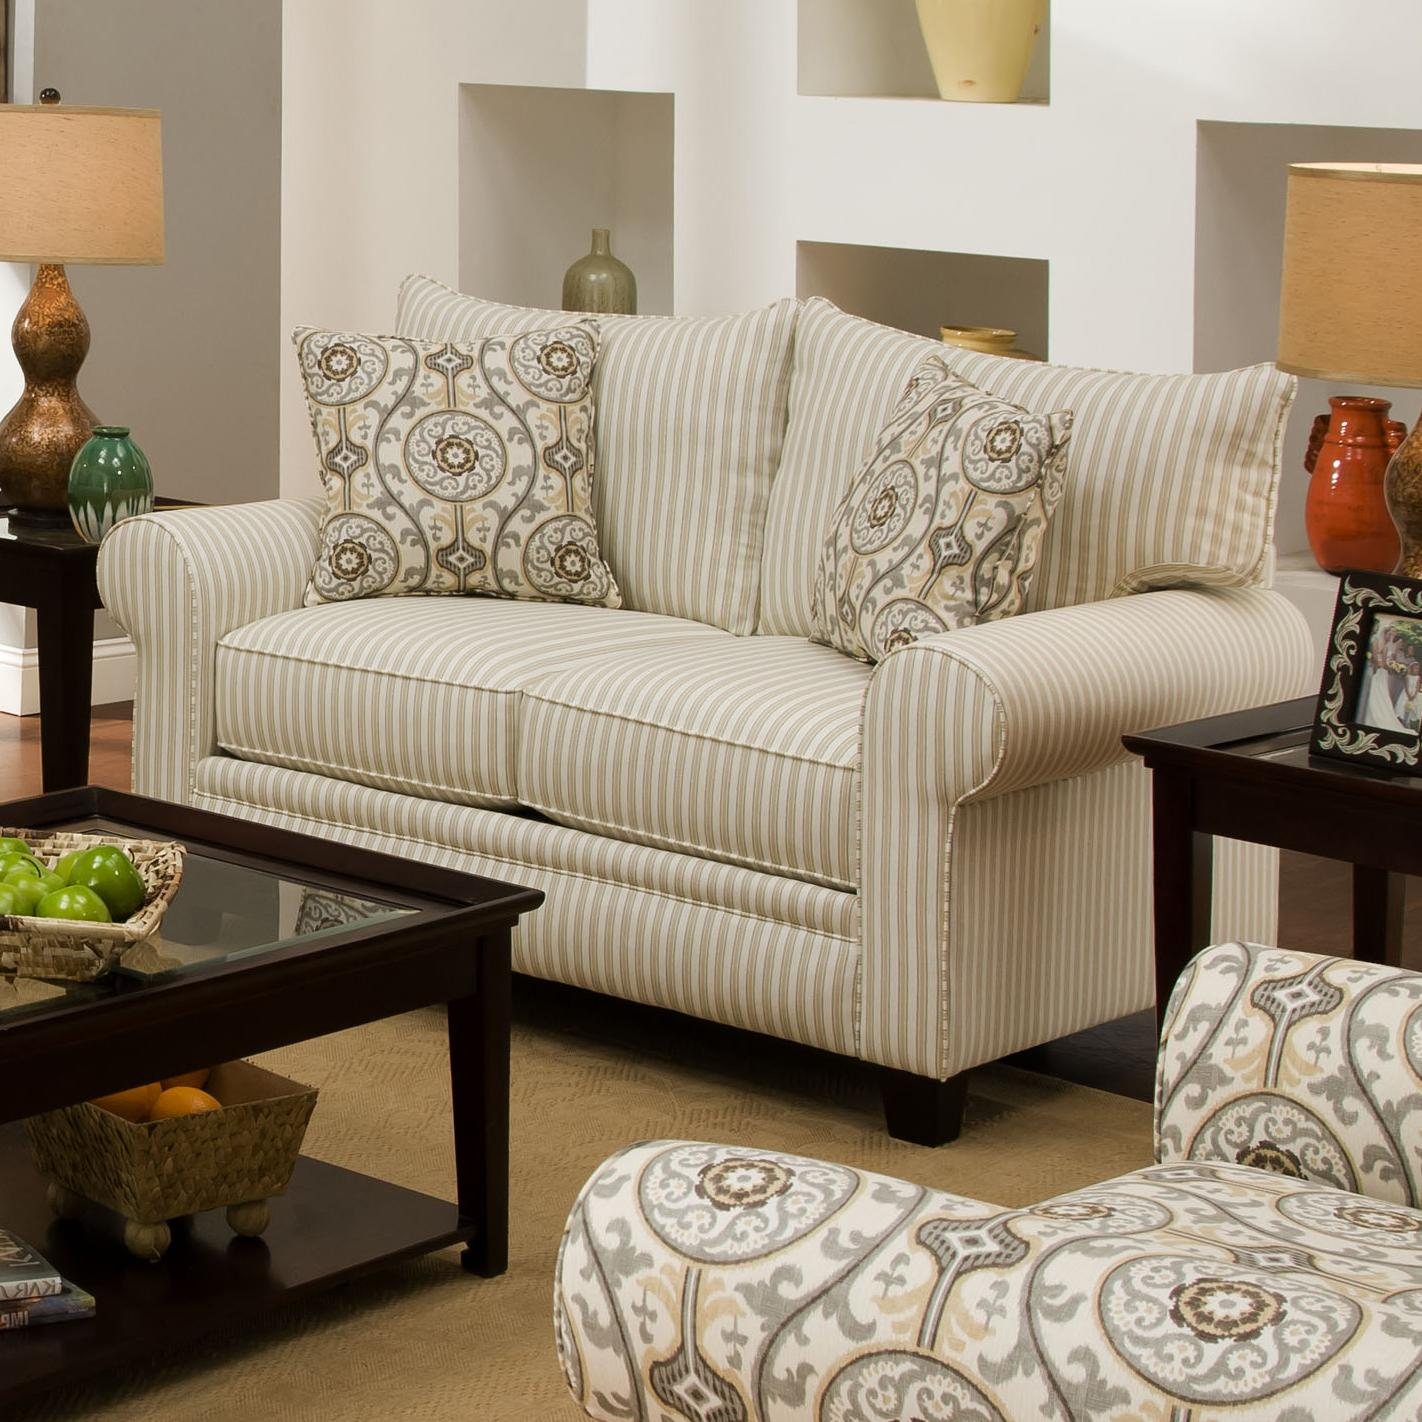 Albany 216 Transitional Loveseat - Item Number: 216-10-BoulevardGrey